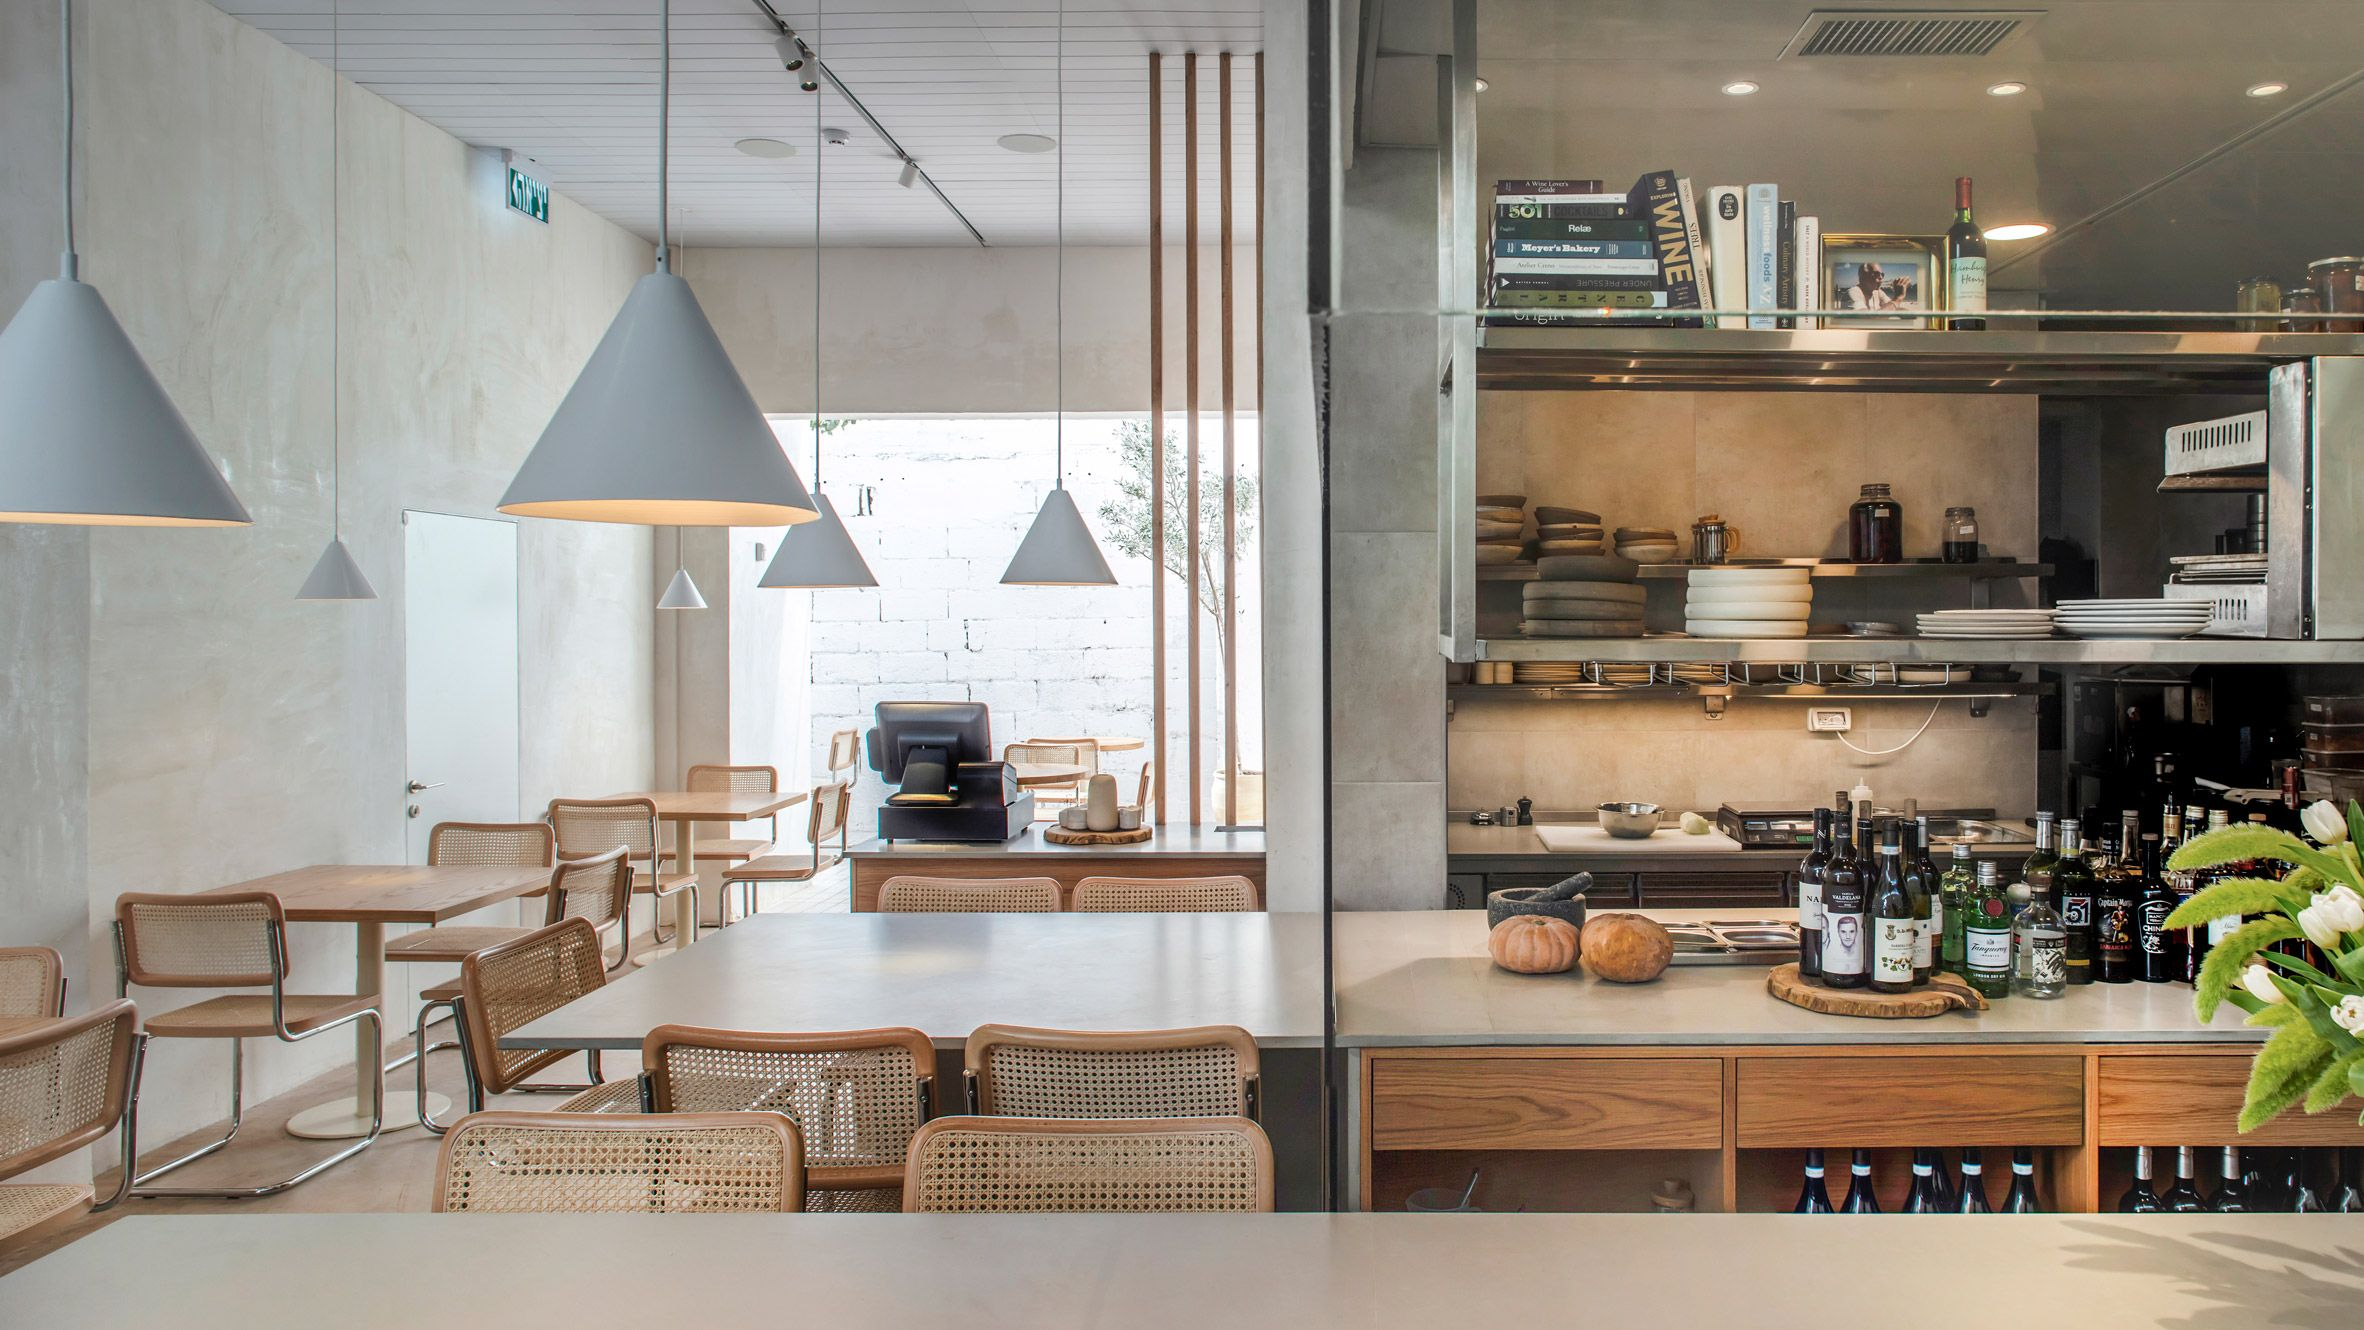 A Glass Enclosed Kitchen At The Entrance To This Tel Aviv